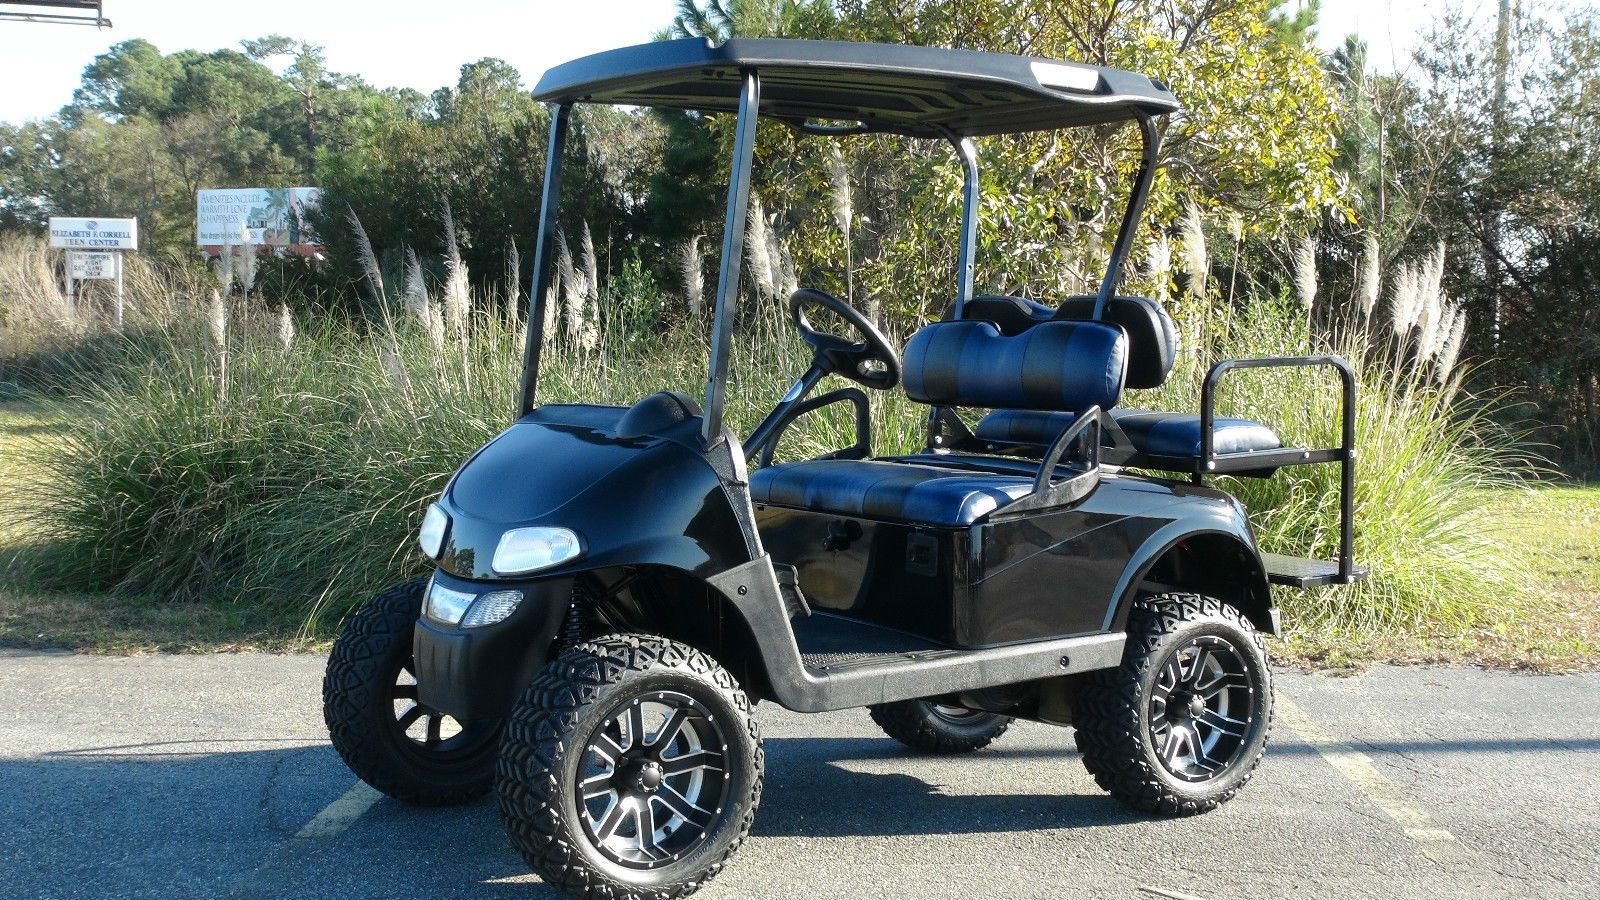 EZGO RXV GAS GOLF Cart/ Refurbished Custom / 4 Penger / Lifted ... Custom Rxv Seater Golf Cart on electric golf cart 6 seater, ezgo 6 seater, honda golf cart 6 seater, gas golf cart 6 seater, yamaha 6 seater, ez go golf cart 6 seater,